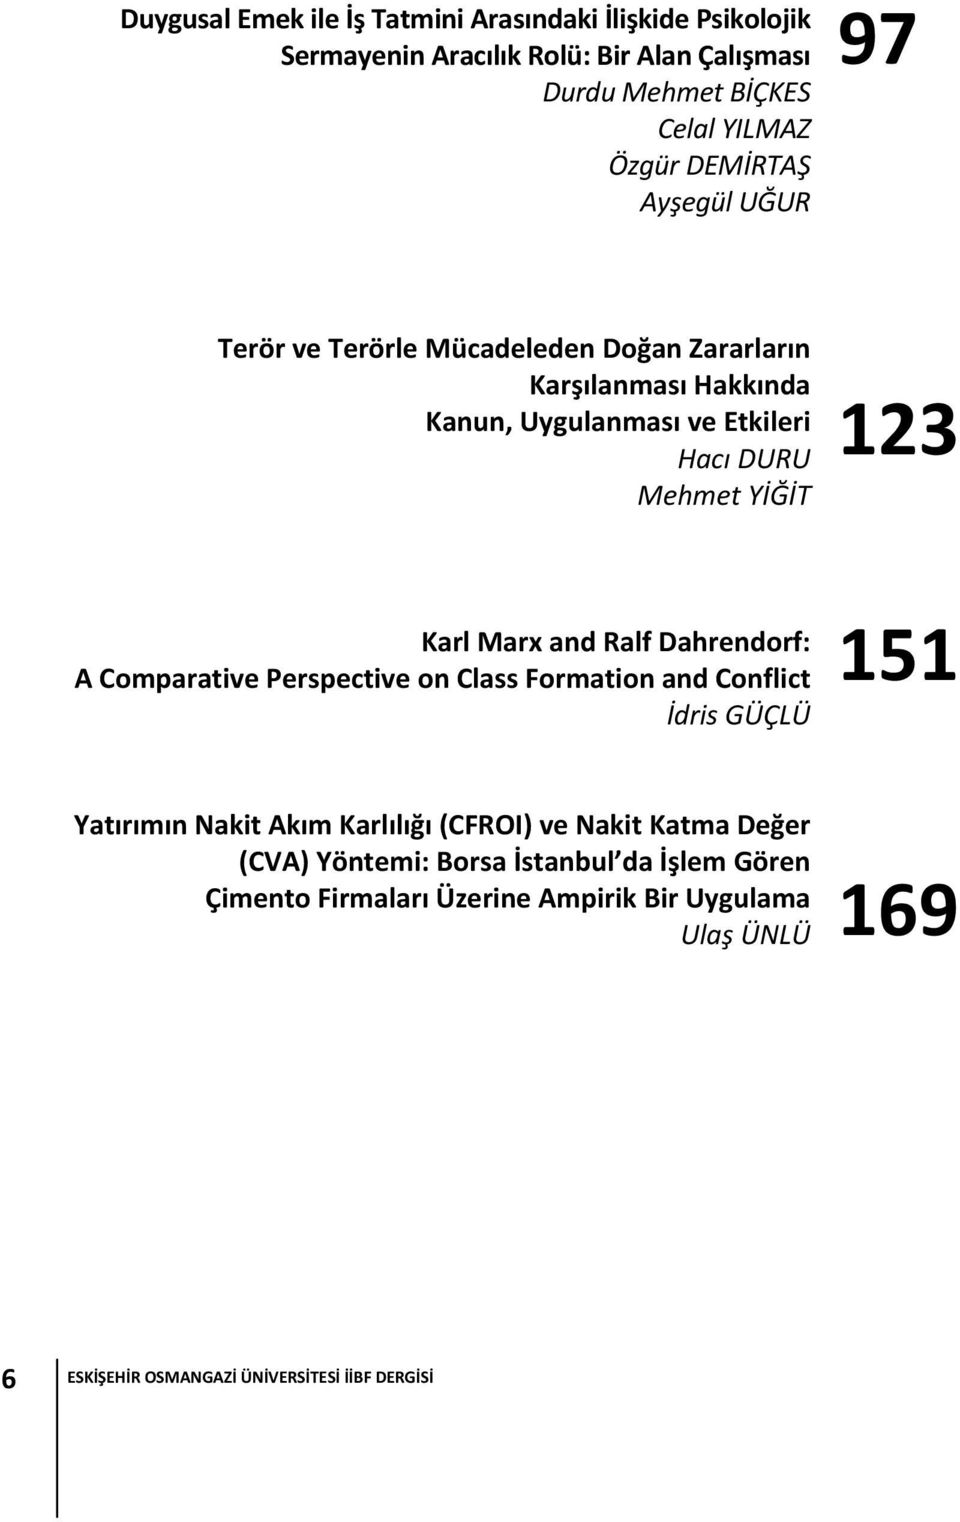 and Ralf Dahrendorf: A Comparative Perspective on Class Formation and Conflict İdris GÜÇLÜ 151 Yatırımın Nakit Akım Karlılığı (CFROI) ve Nakit Katma